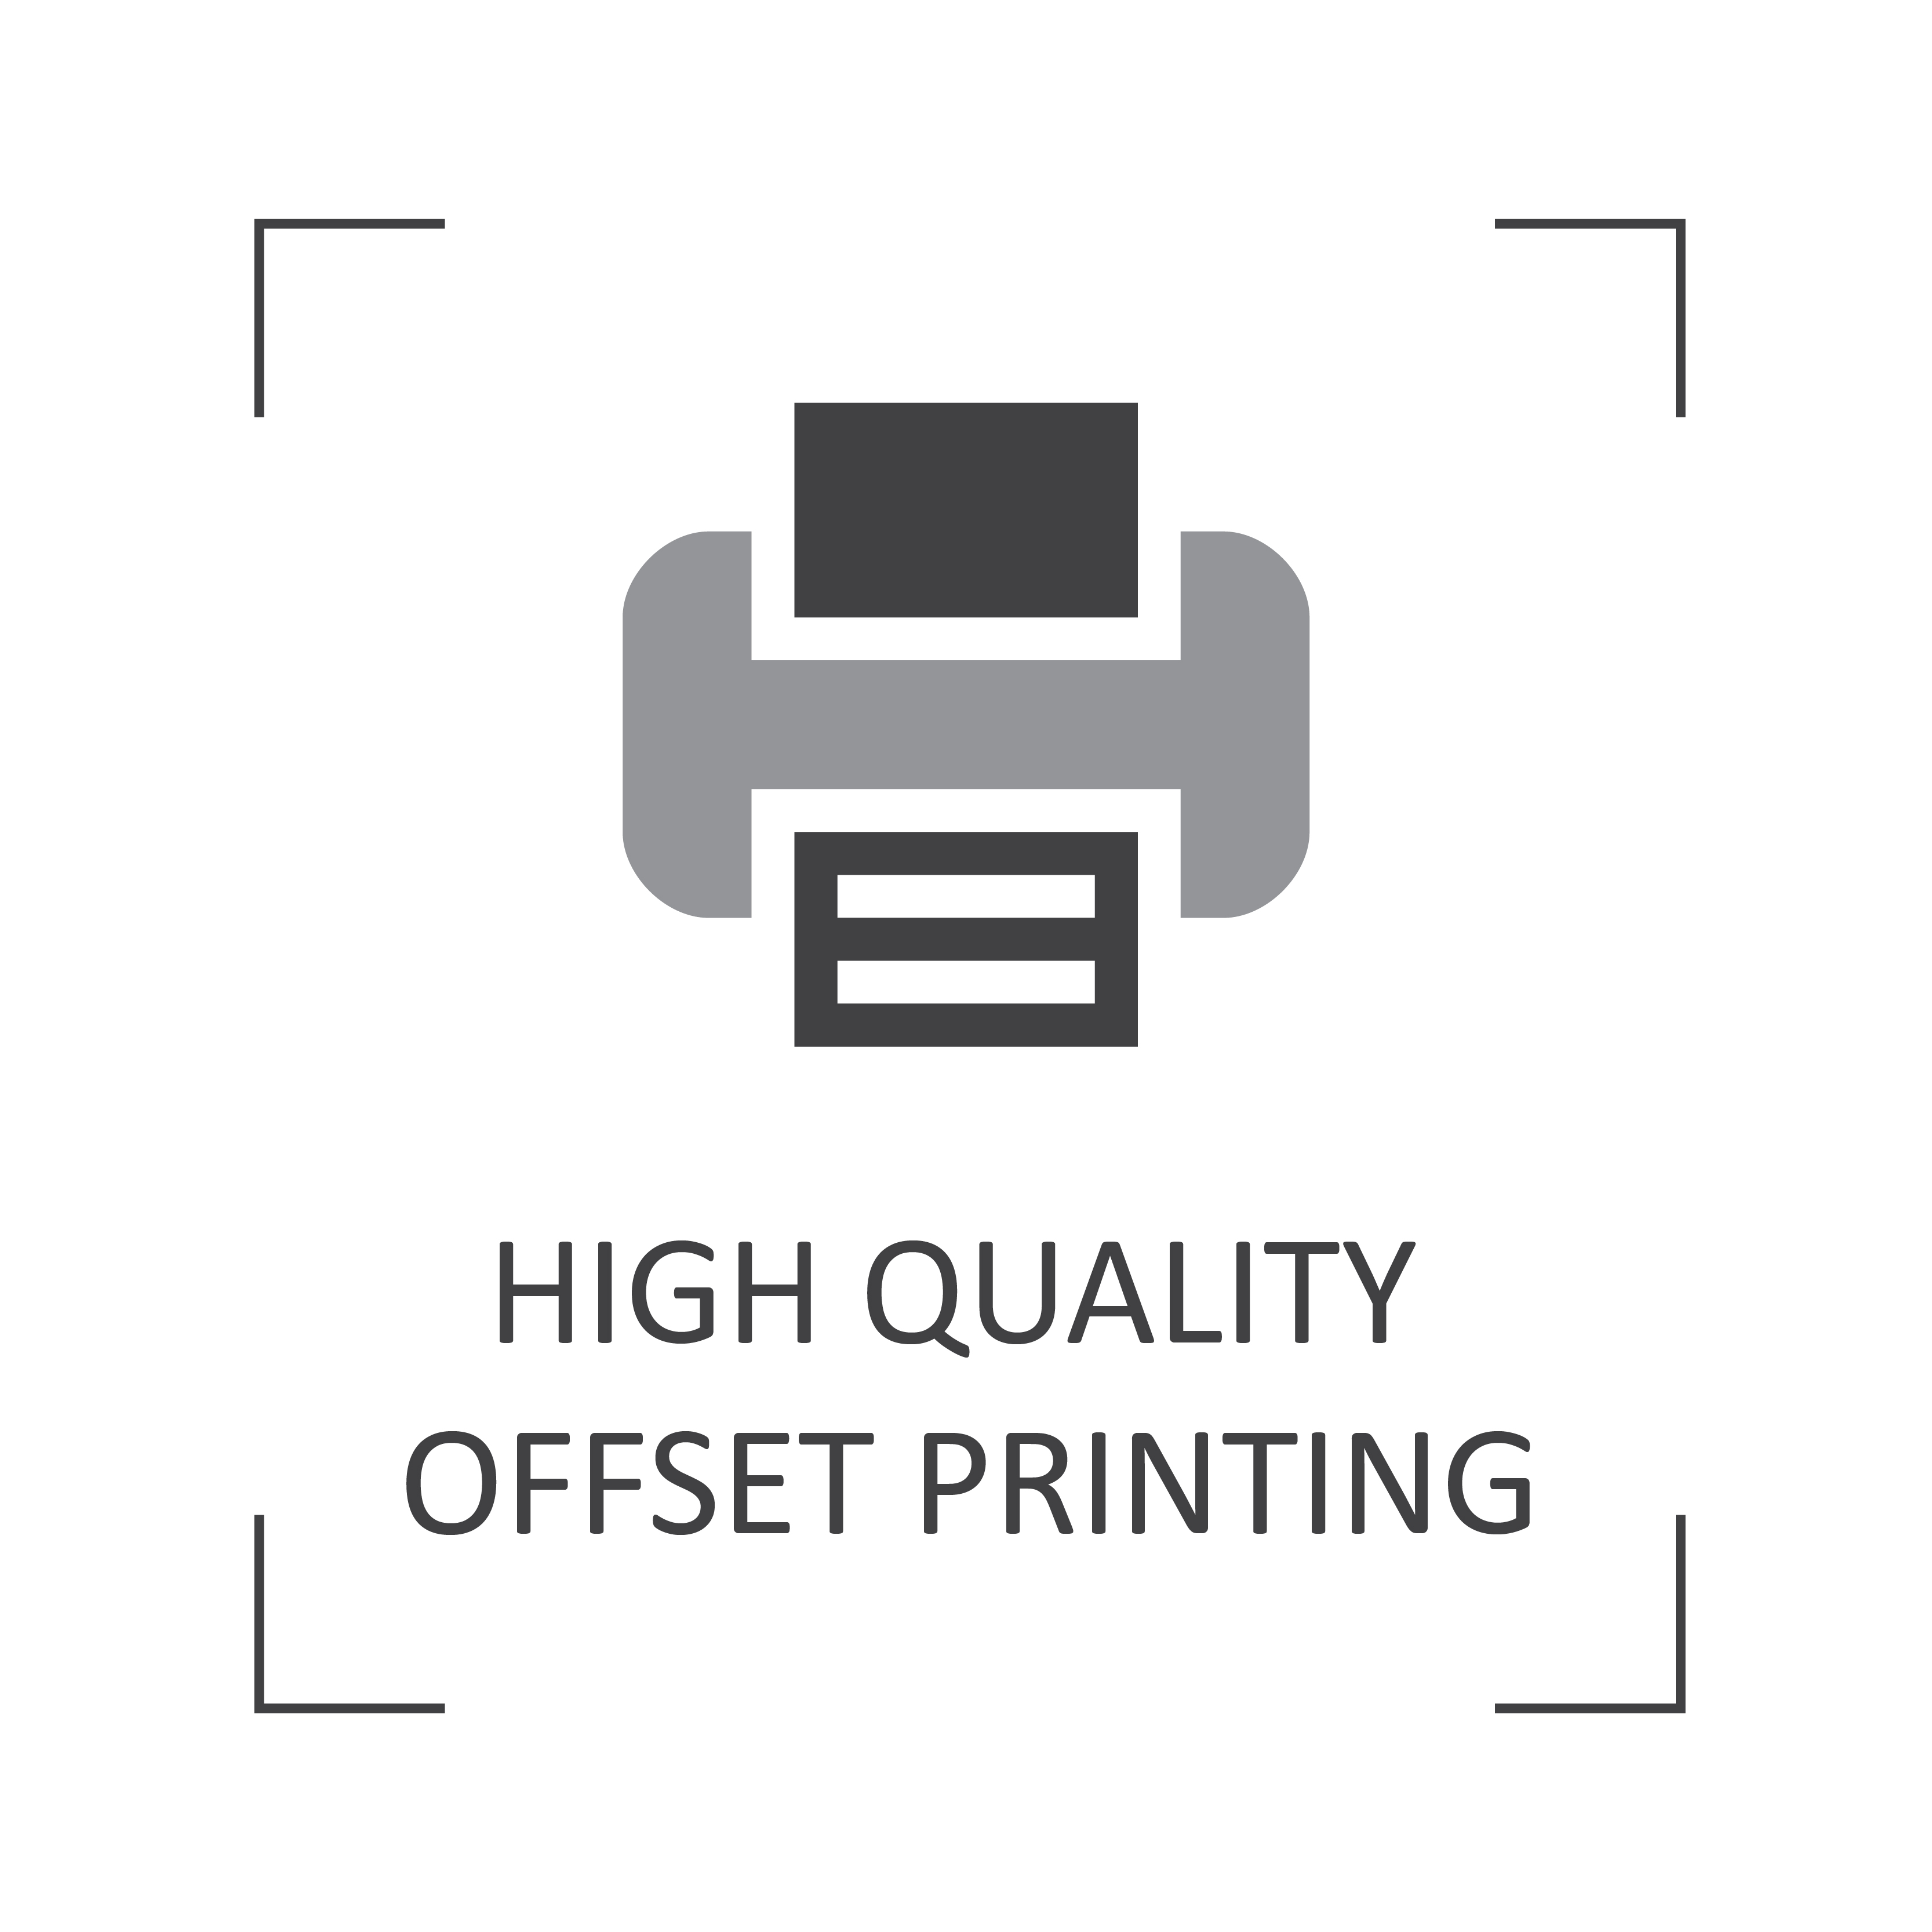 High quality offset printing